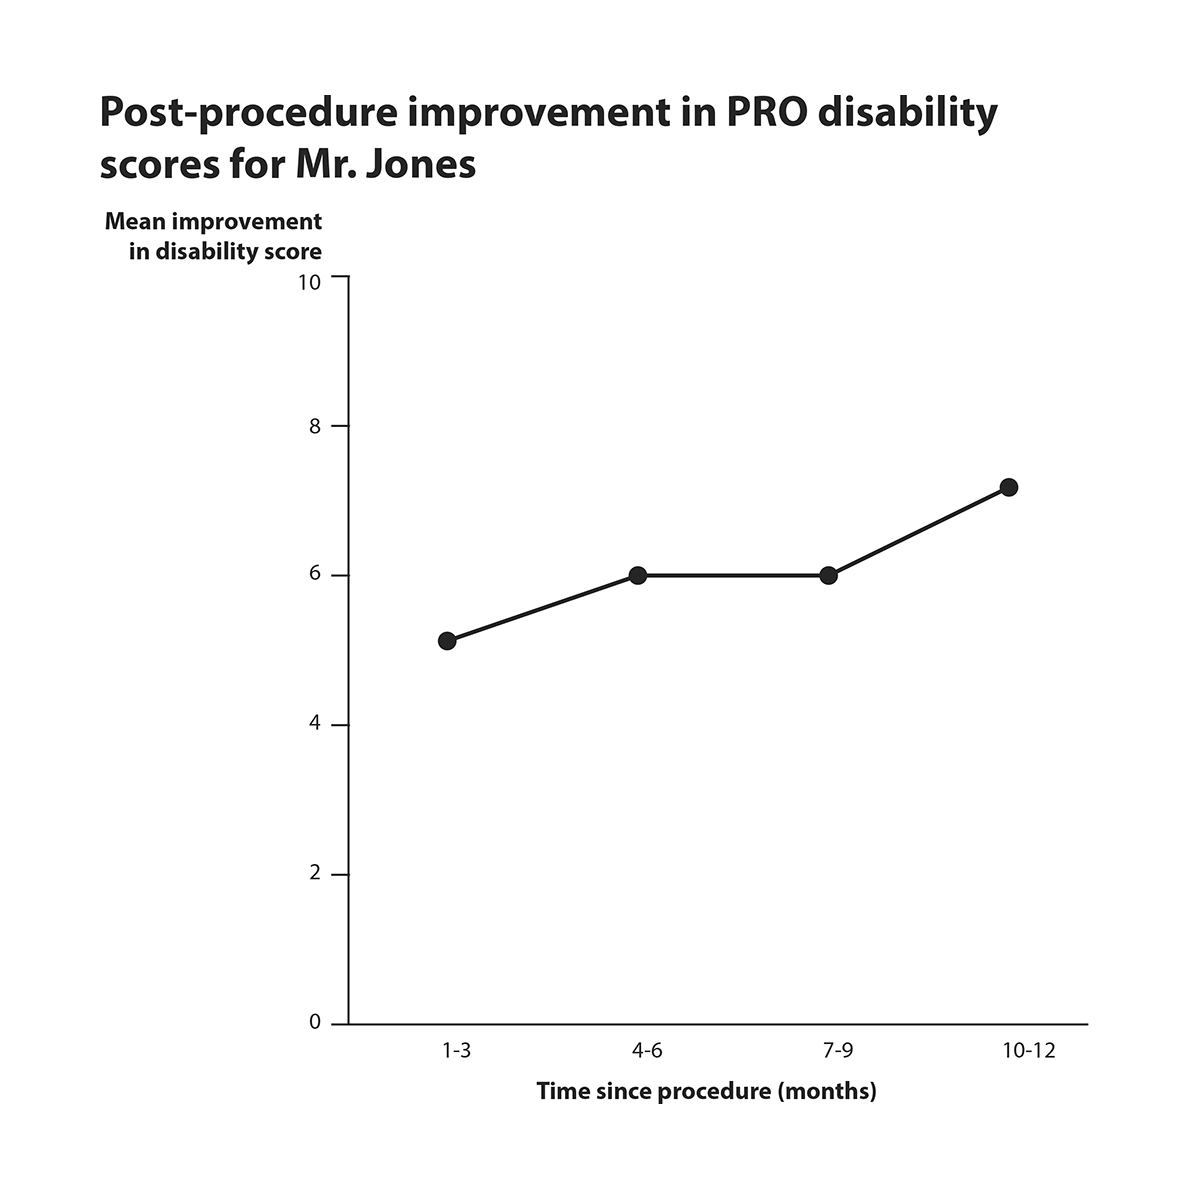 Line graph showing post-procedure improvement in PRO disability score for Mr. Jones.